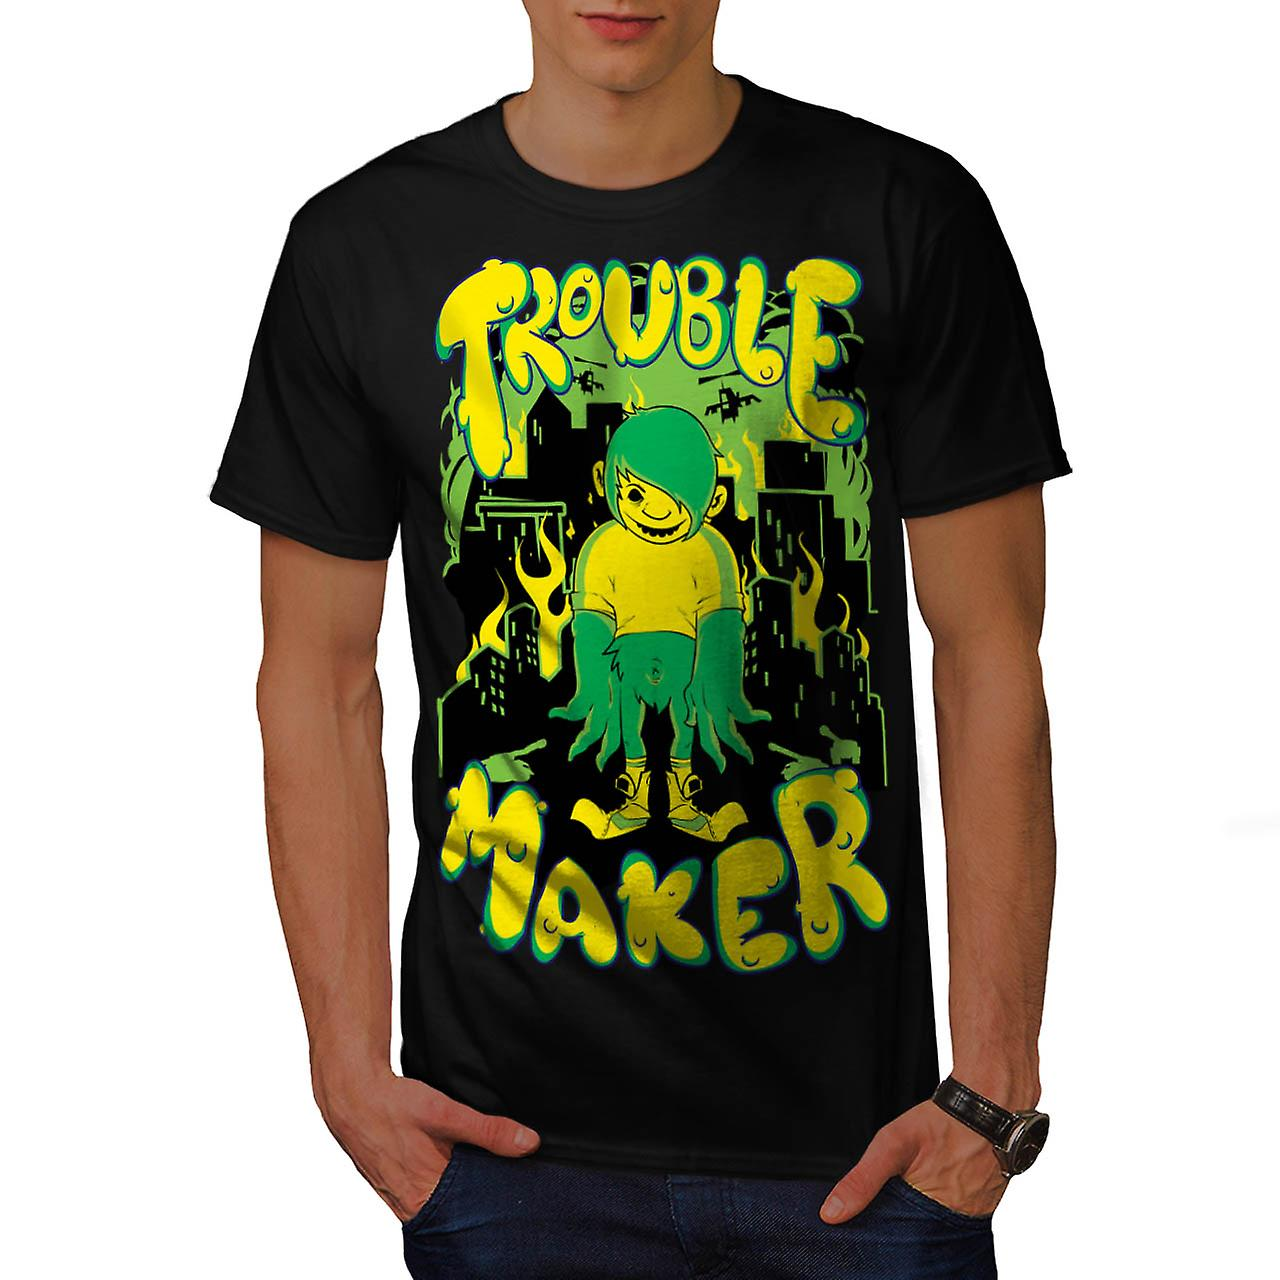 Trouble Maker Youth Chaos Problem Men Black T-shirt | Wellcoda